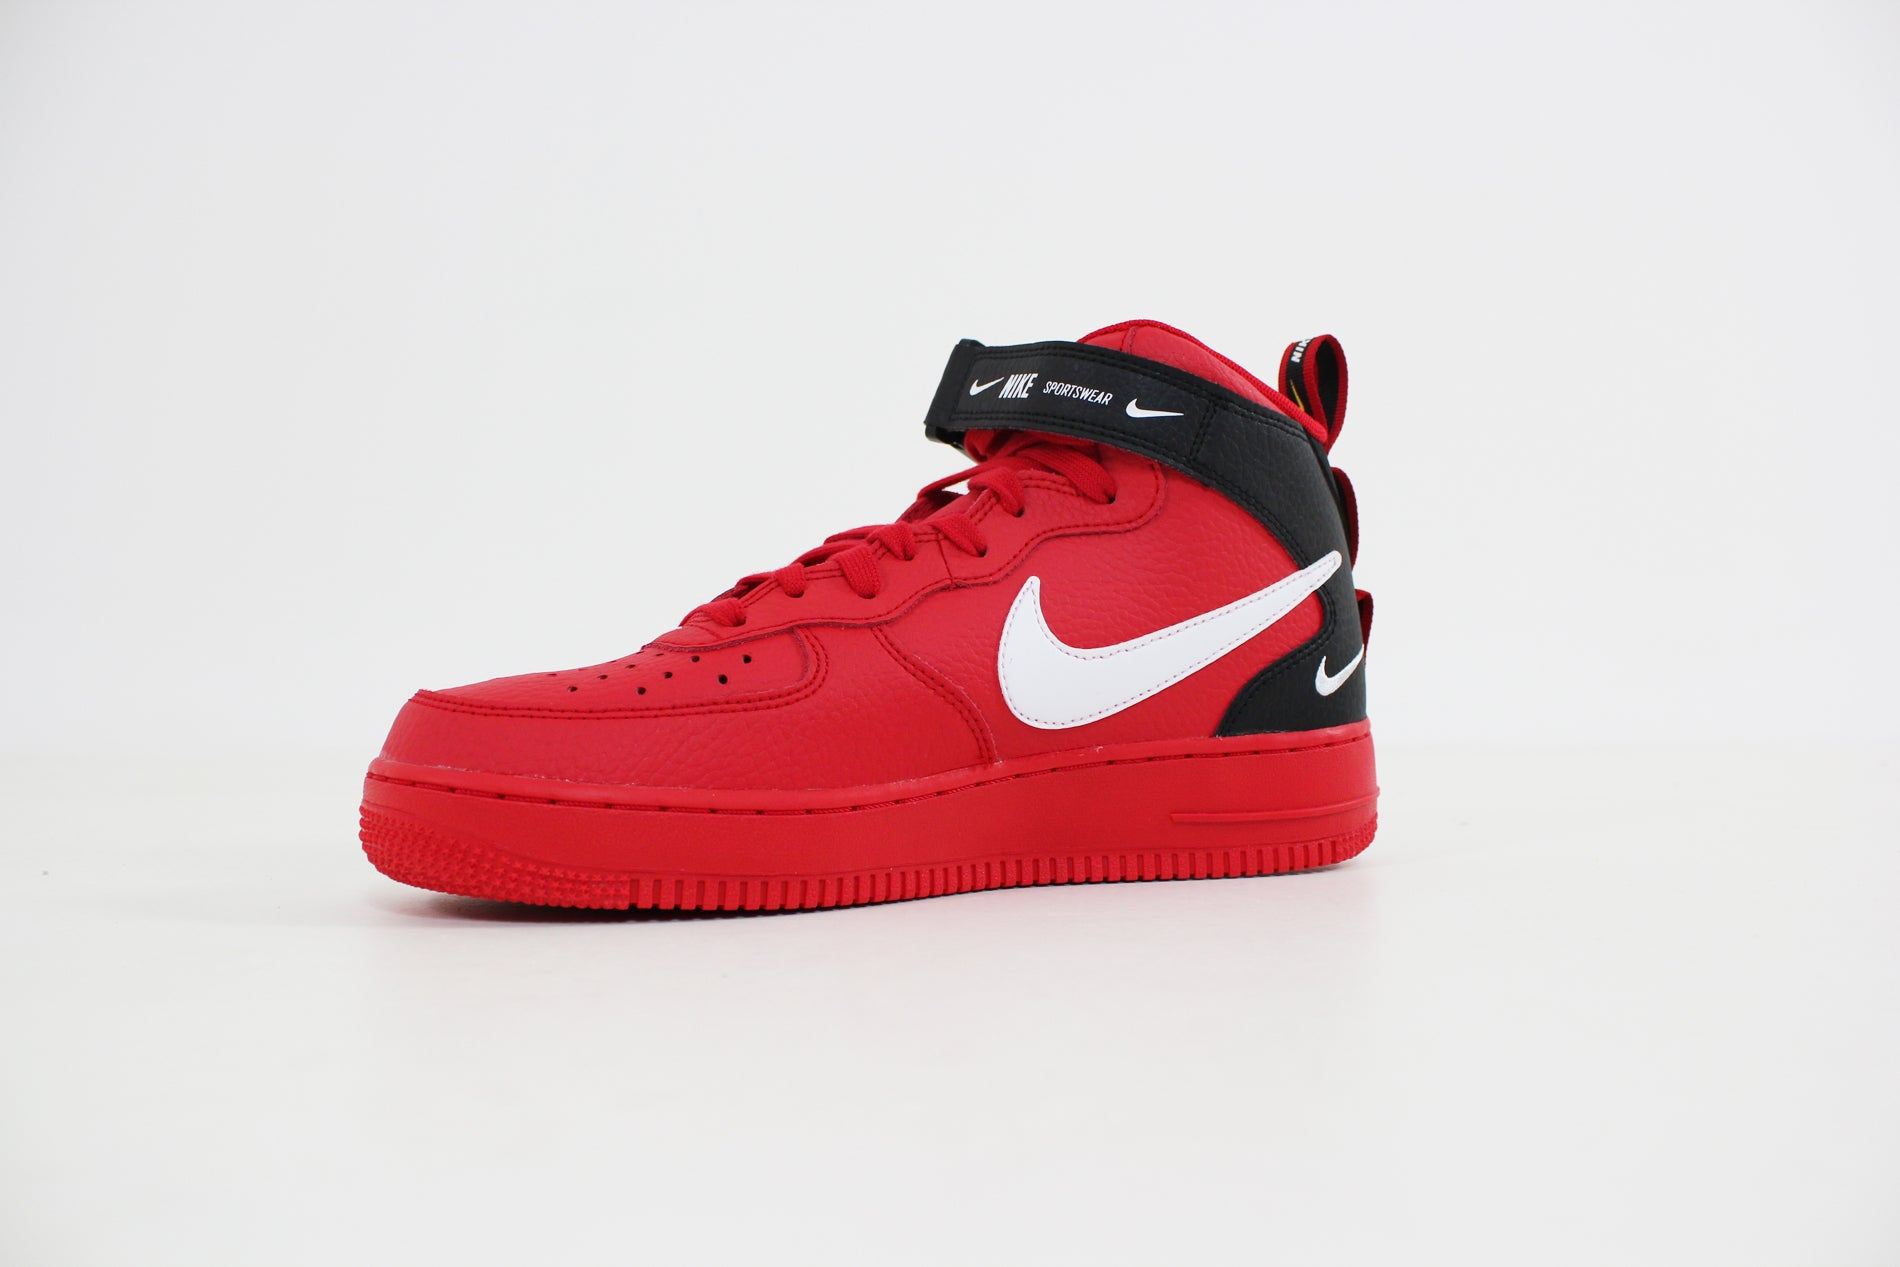 Nike - Air Force 1 Mid 07 LV8